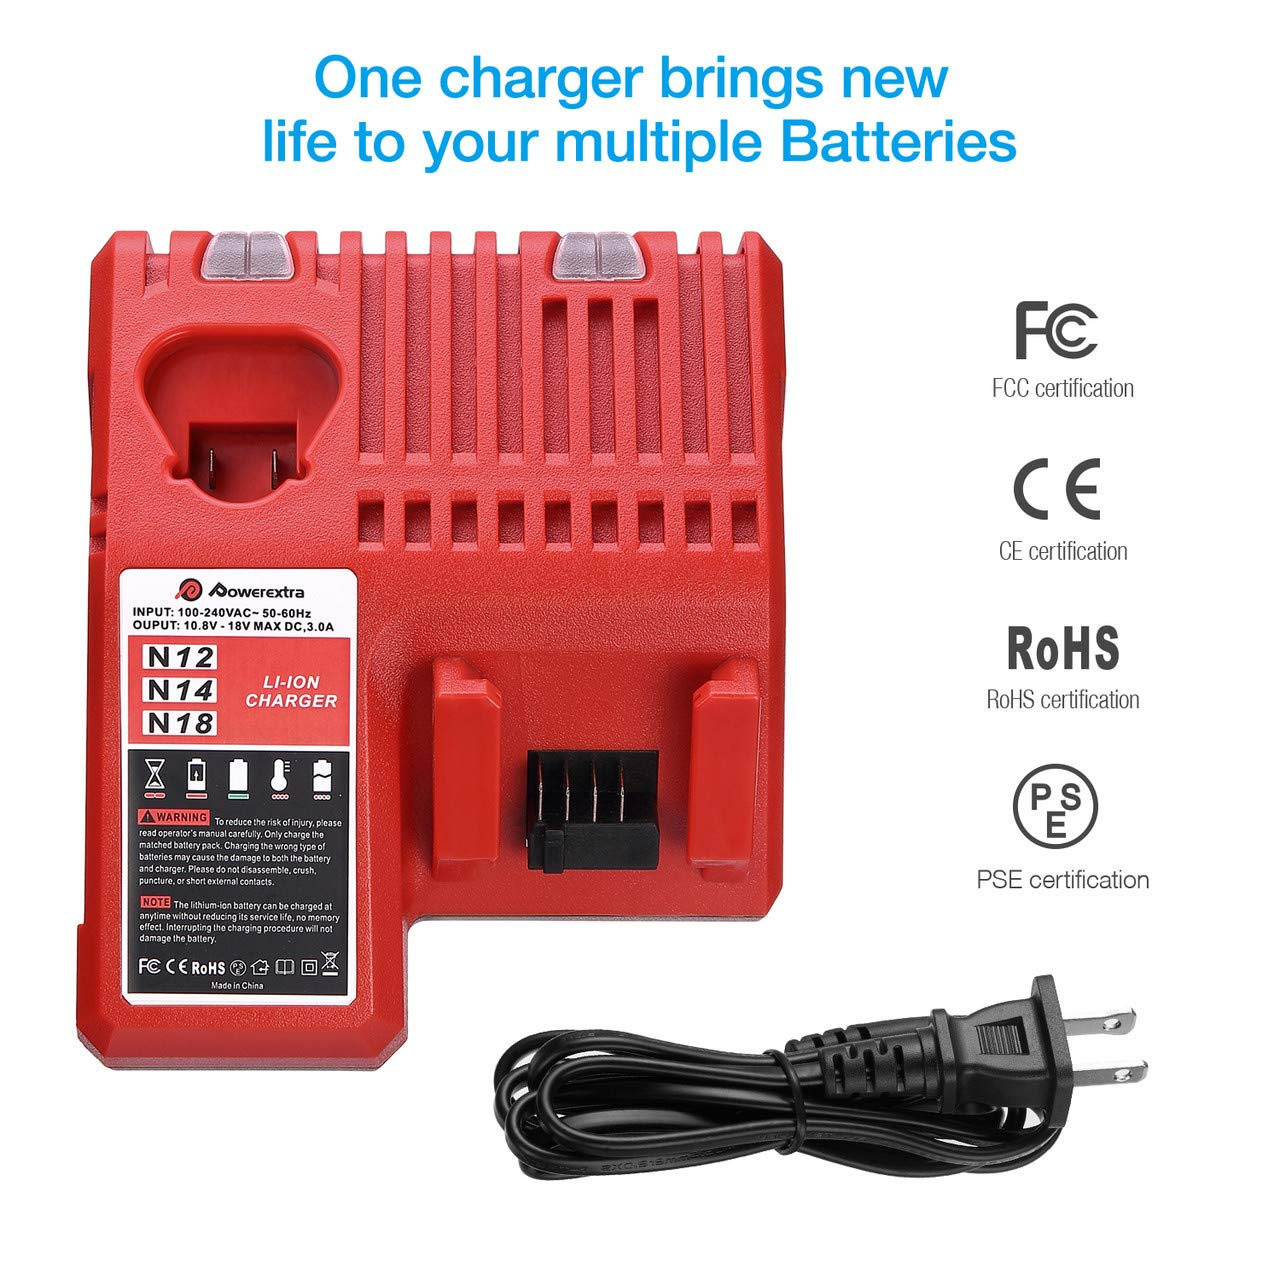 Powerextra M12 /& M18 Rapid Replacement Charger for Milwaukee 48-59-1812 M12 or M18 M14 Lithium Battery 48-11-2420 48-11-2440 48-11-1820 48-11-1840 48-11-1850 48-11-2401 48-11-1890